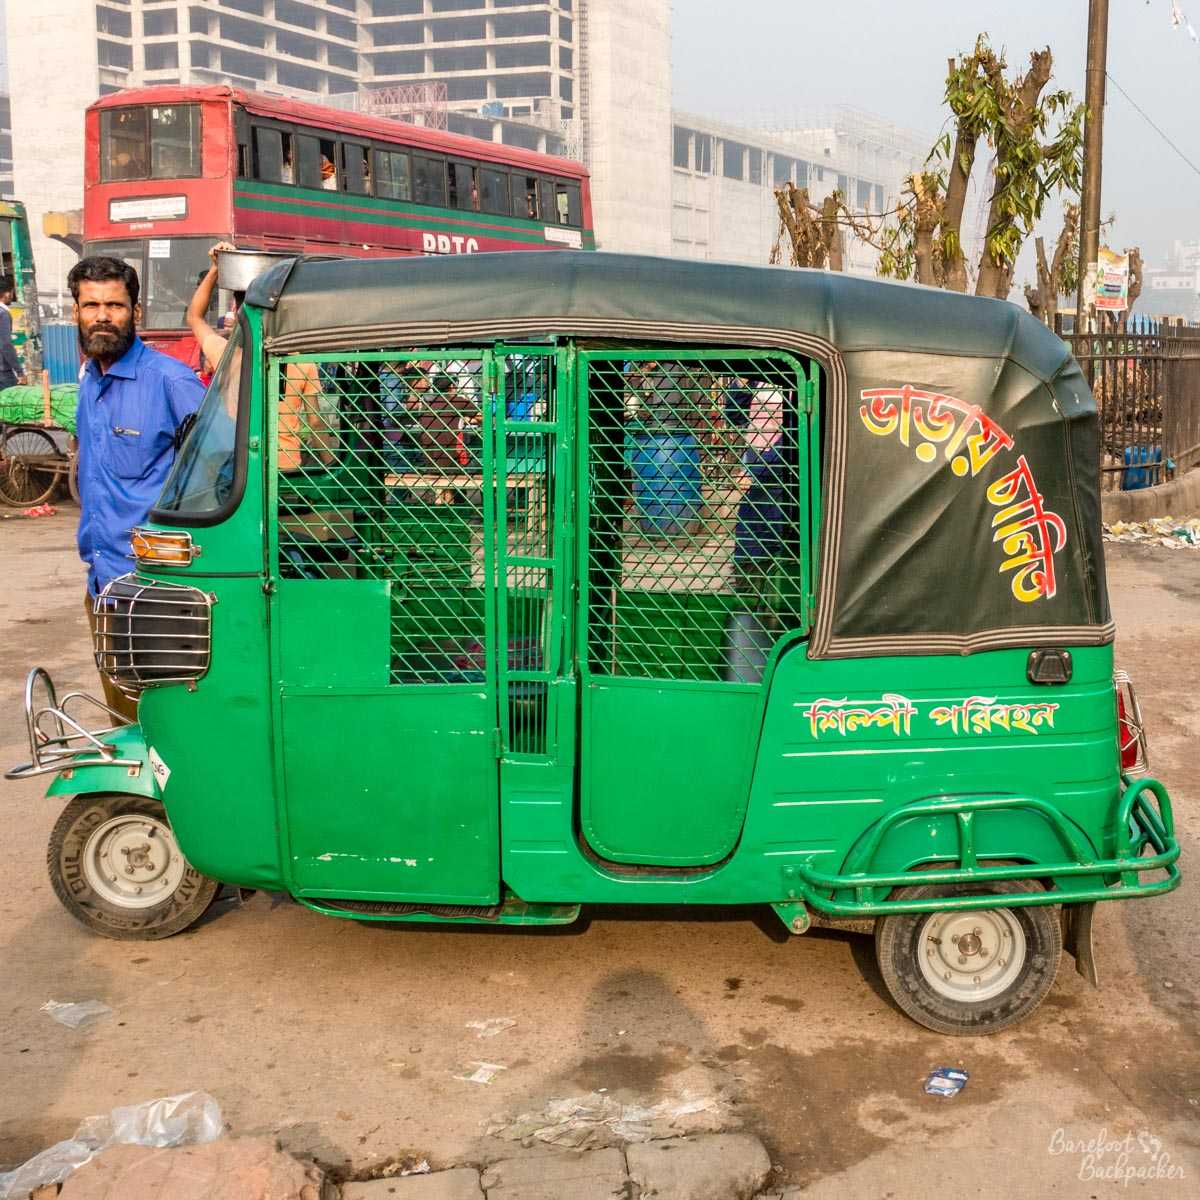 A CNG (gas-powered auto-rickshaw) in the parking bay at the Airport railway station in Dhaka, Bangladesh. It's basically a metal cage on wheels. The standard method of travel across the city. Scary af!